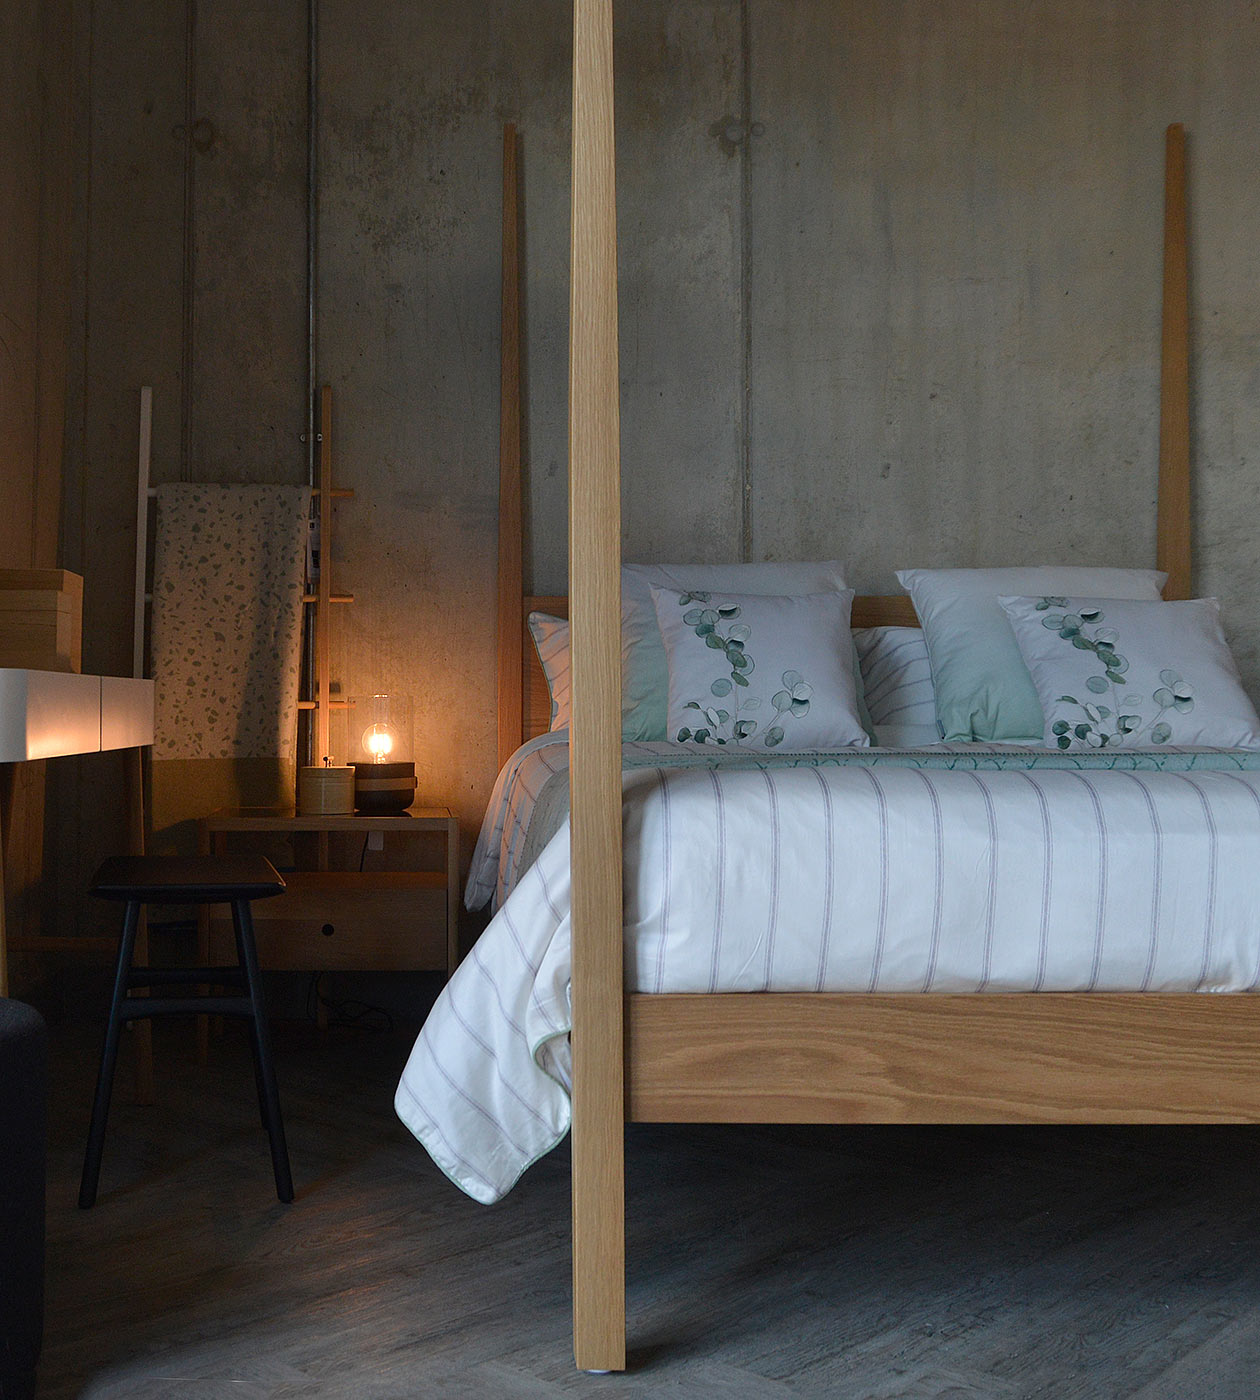 Hatfield is a taller wooden bed with 4 tall posts. Here shown in Oak